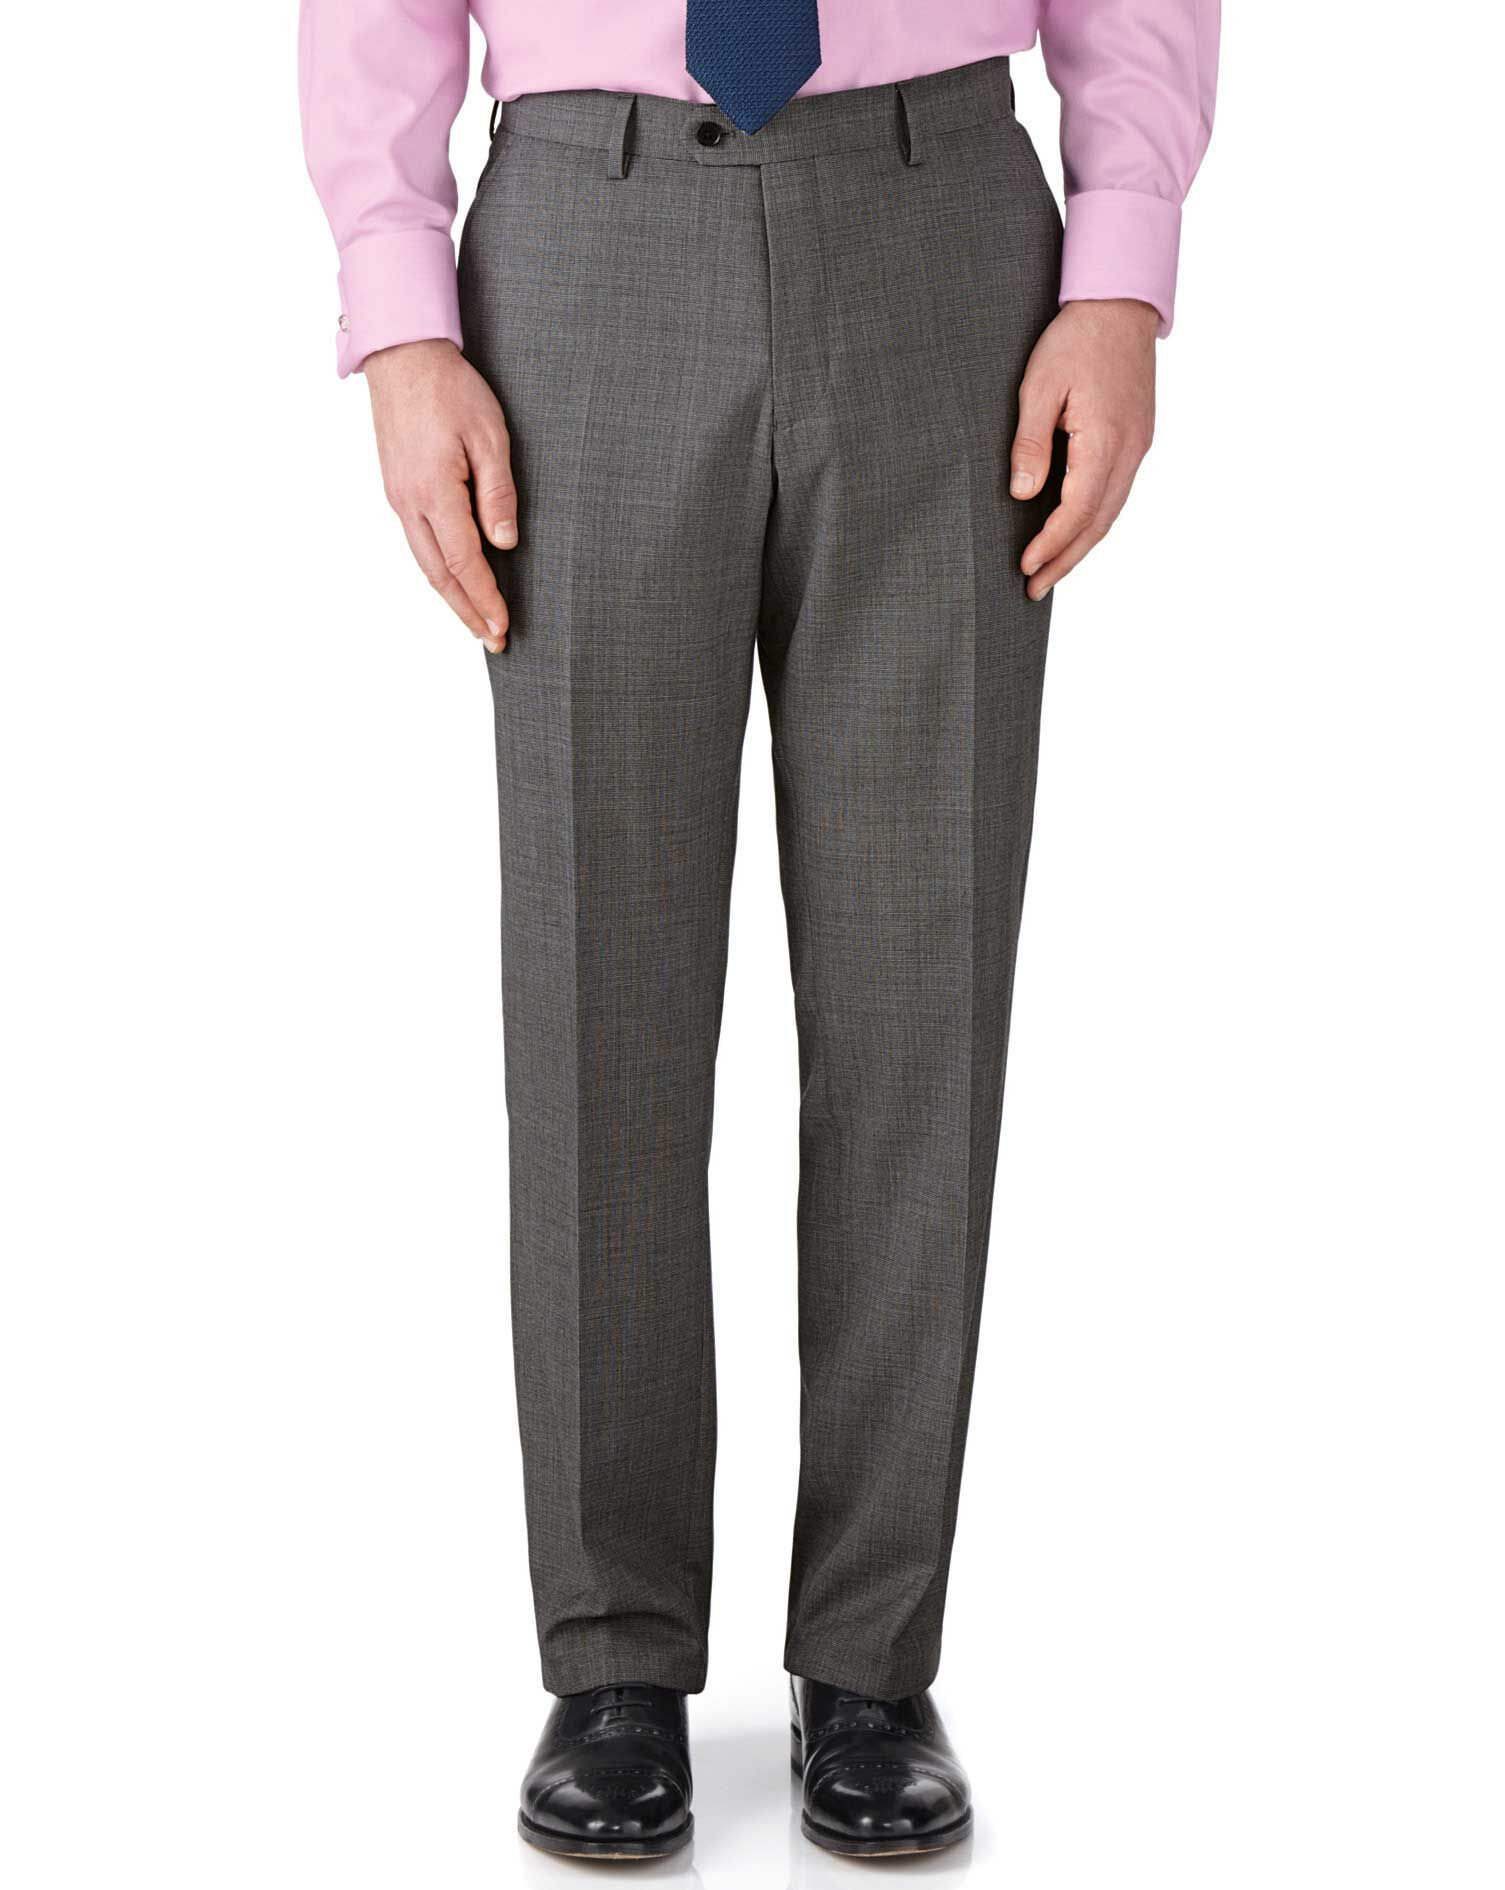 Grey Classic Fit End-On-End Business Suit Trousers Size W32 L38 by Charles Tyrwhitt